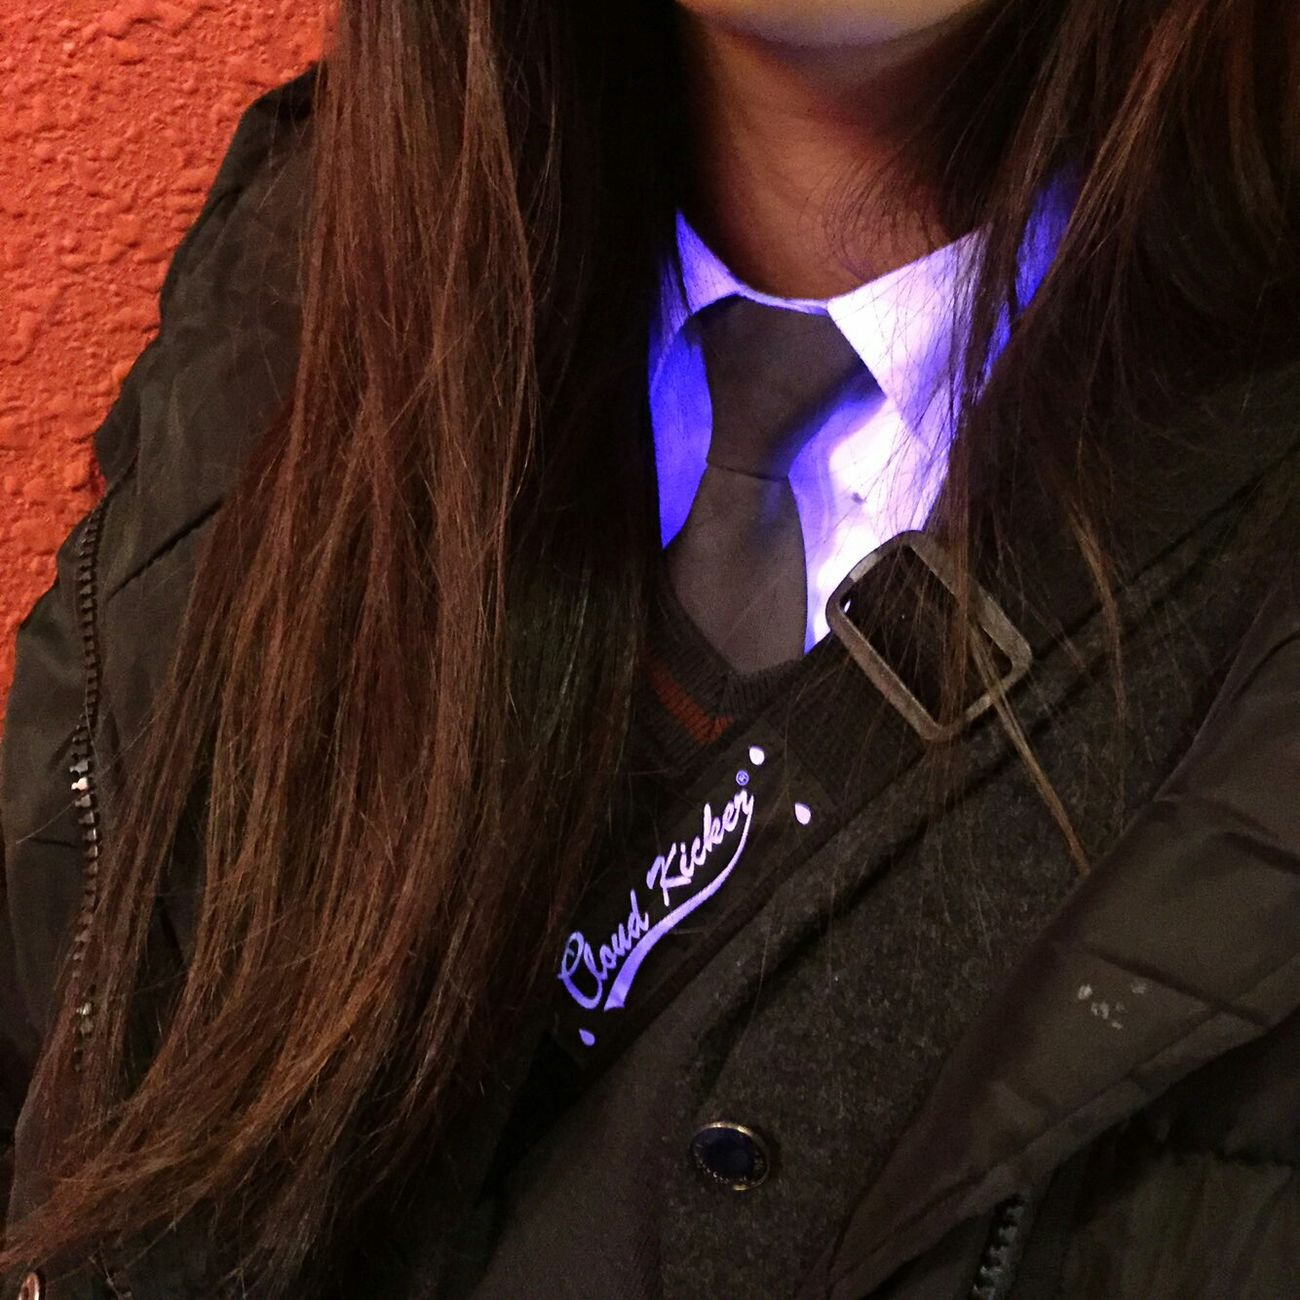 Bluelight School Uniform Tie Cool